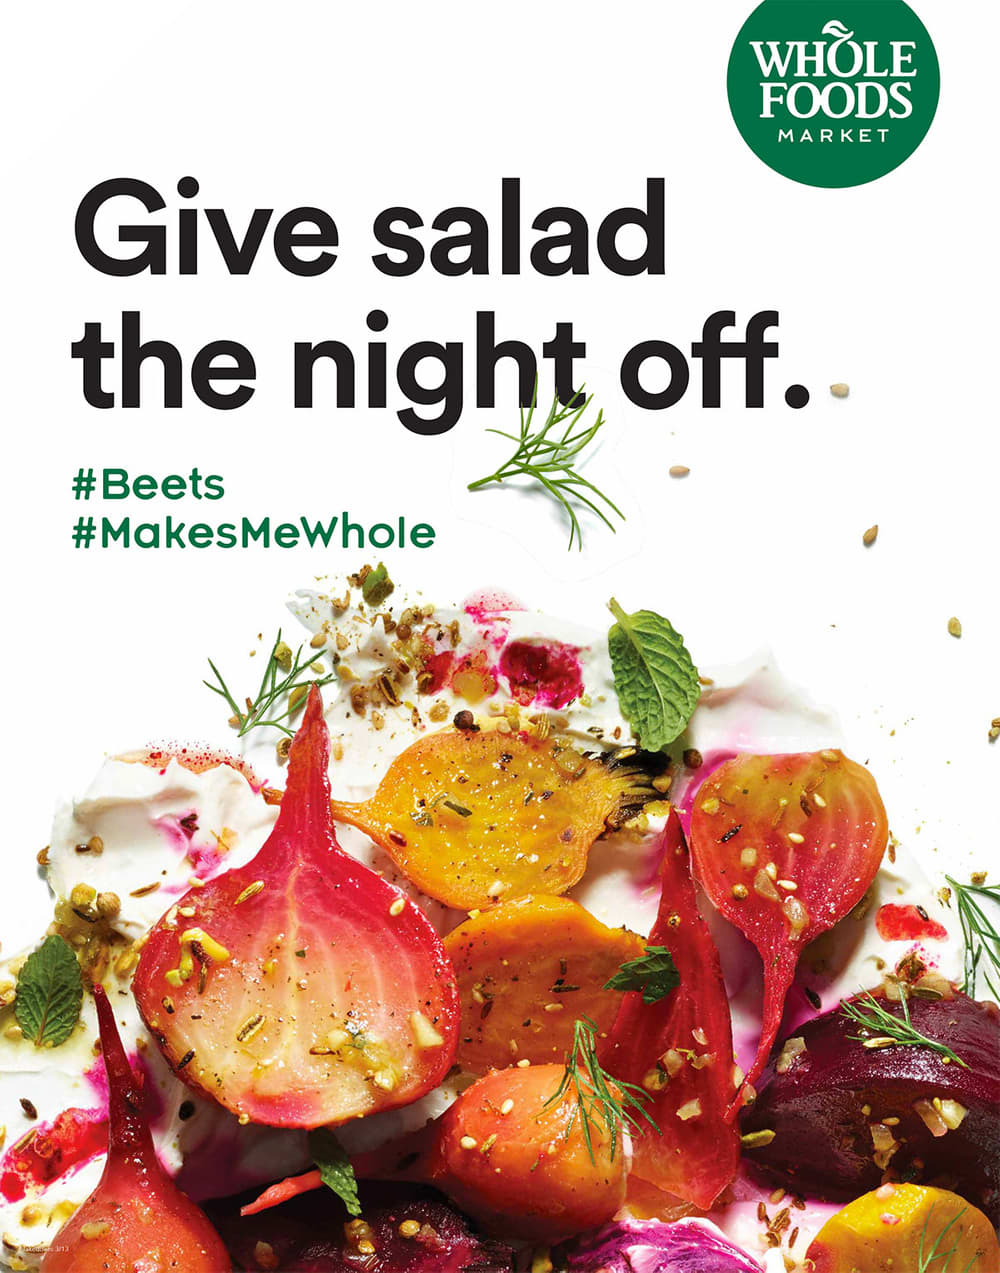 Whole Foods Brand Launch